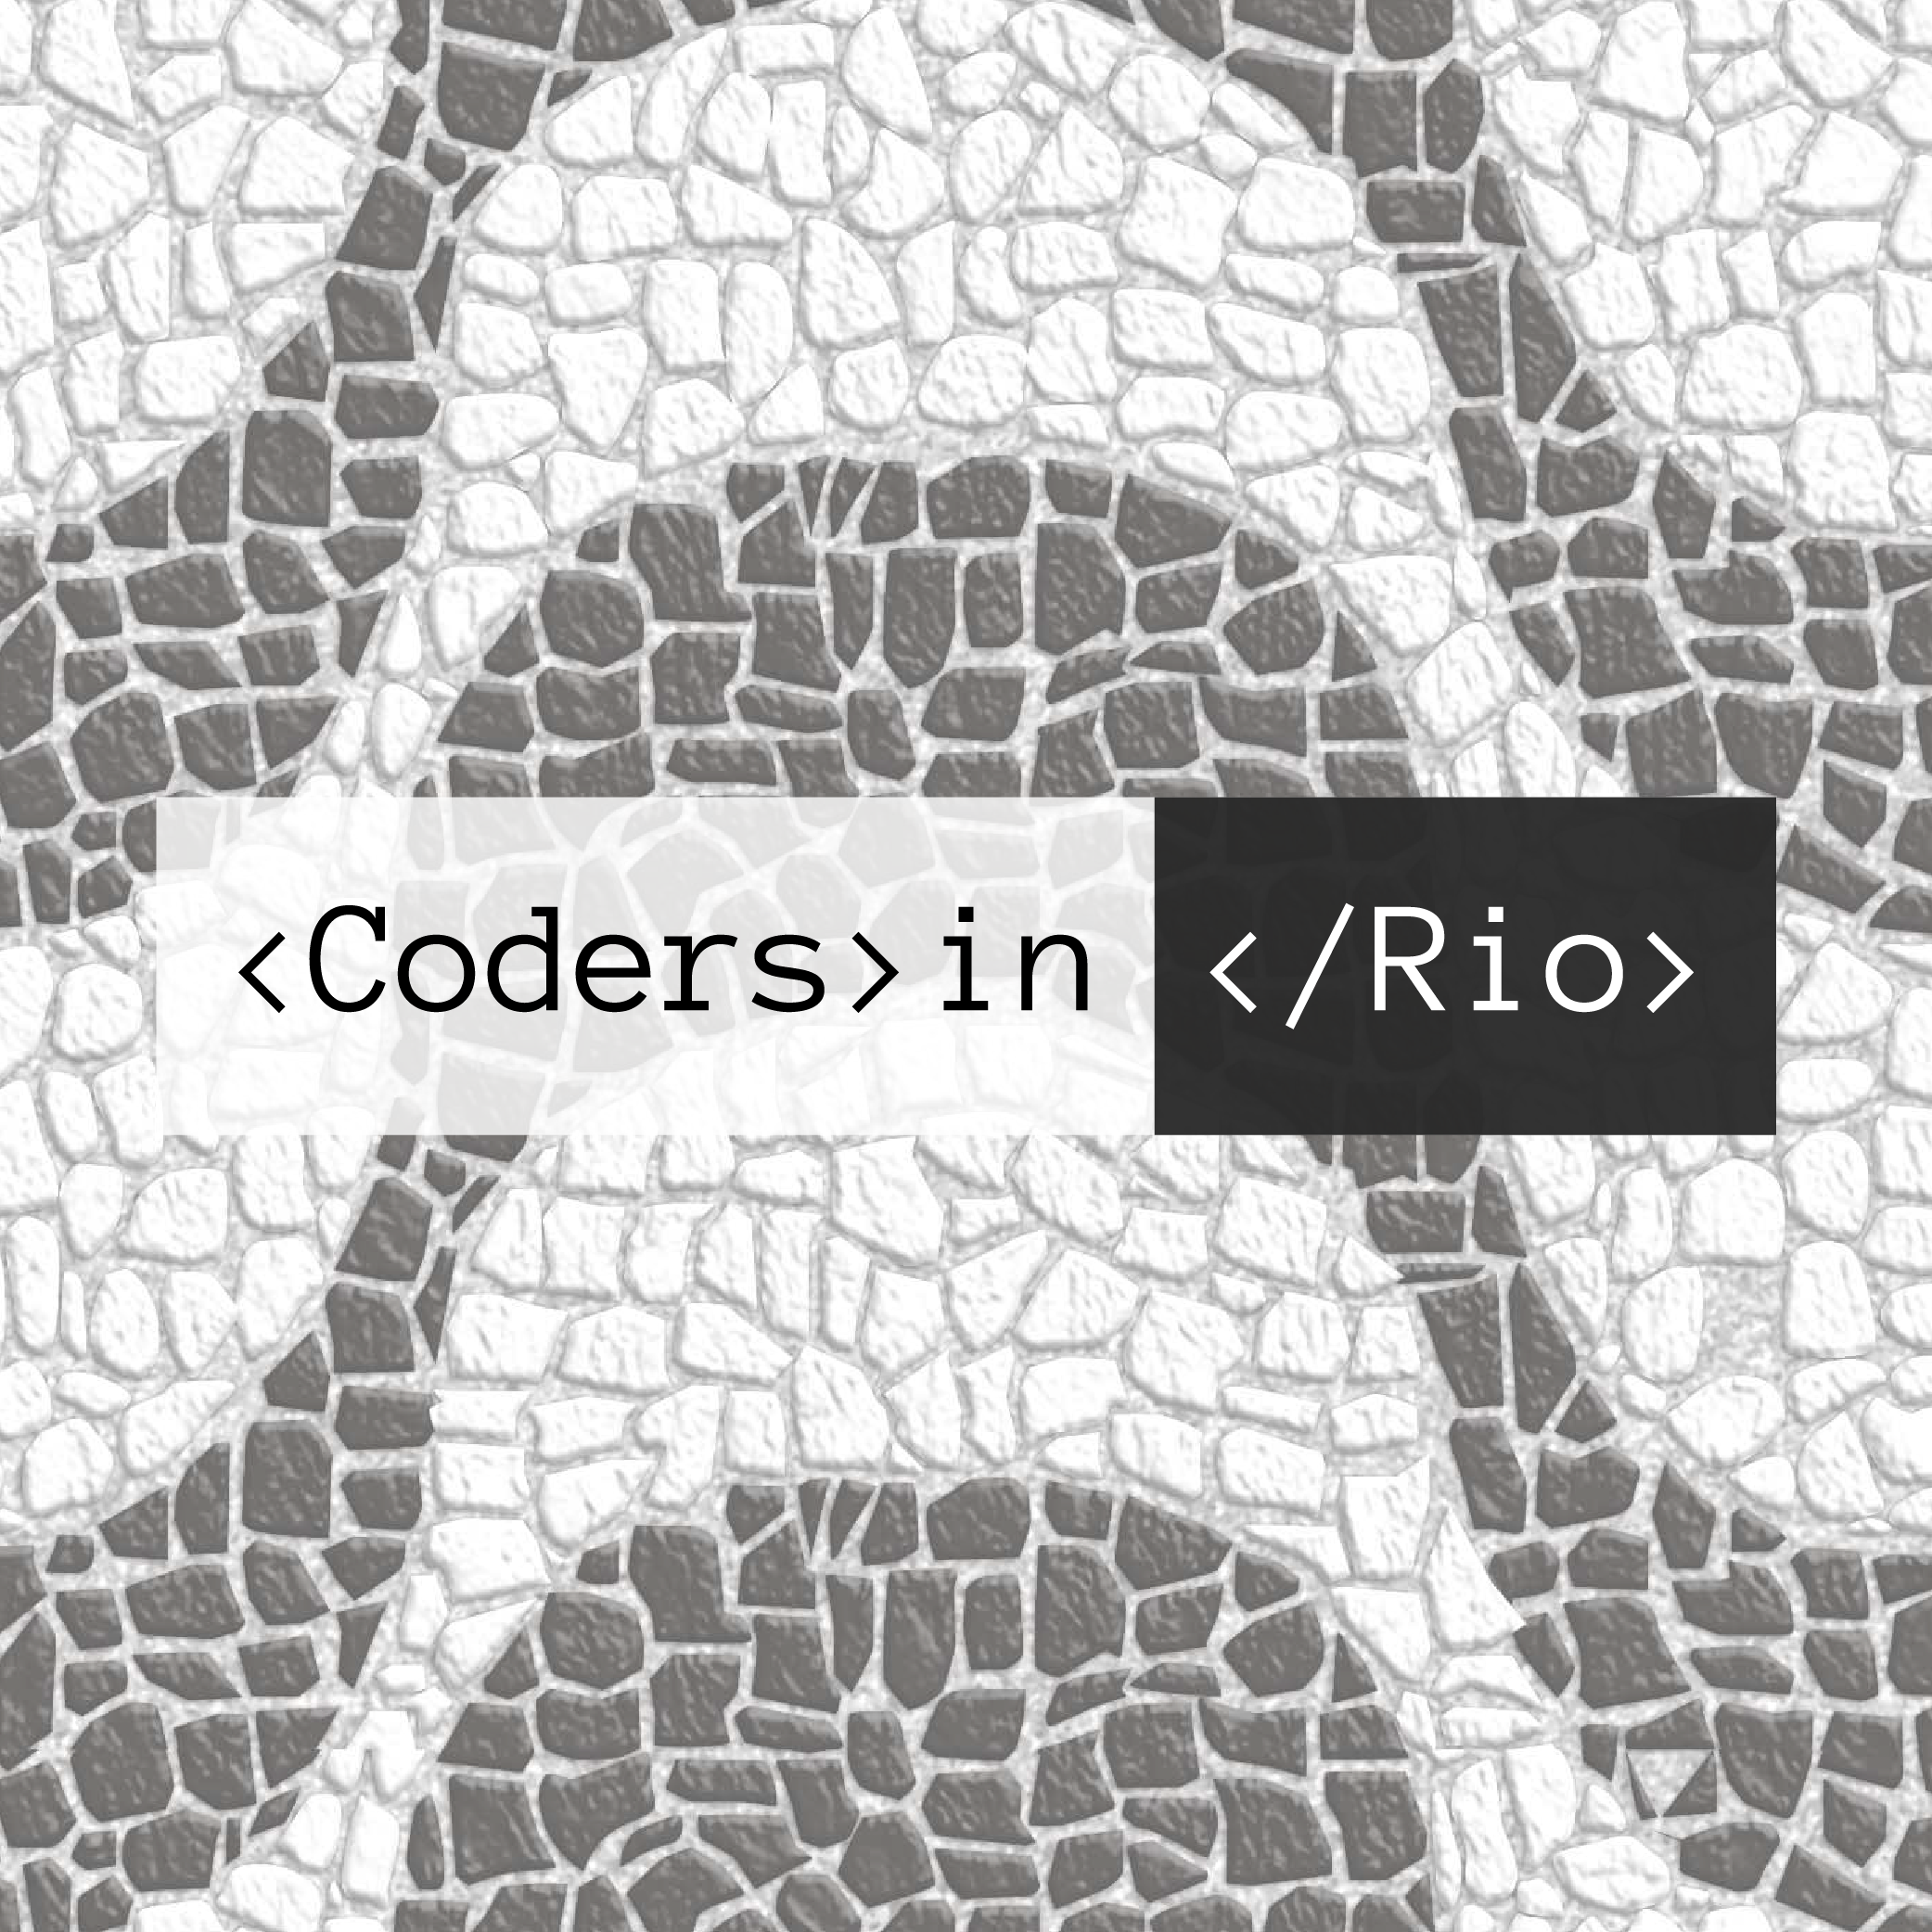 coders in rio